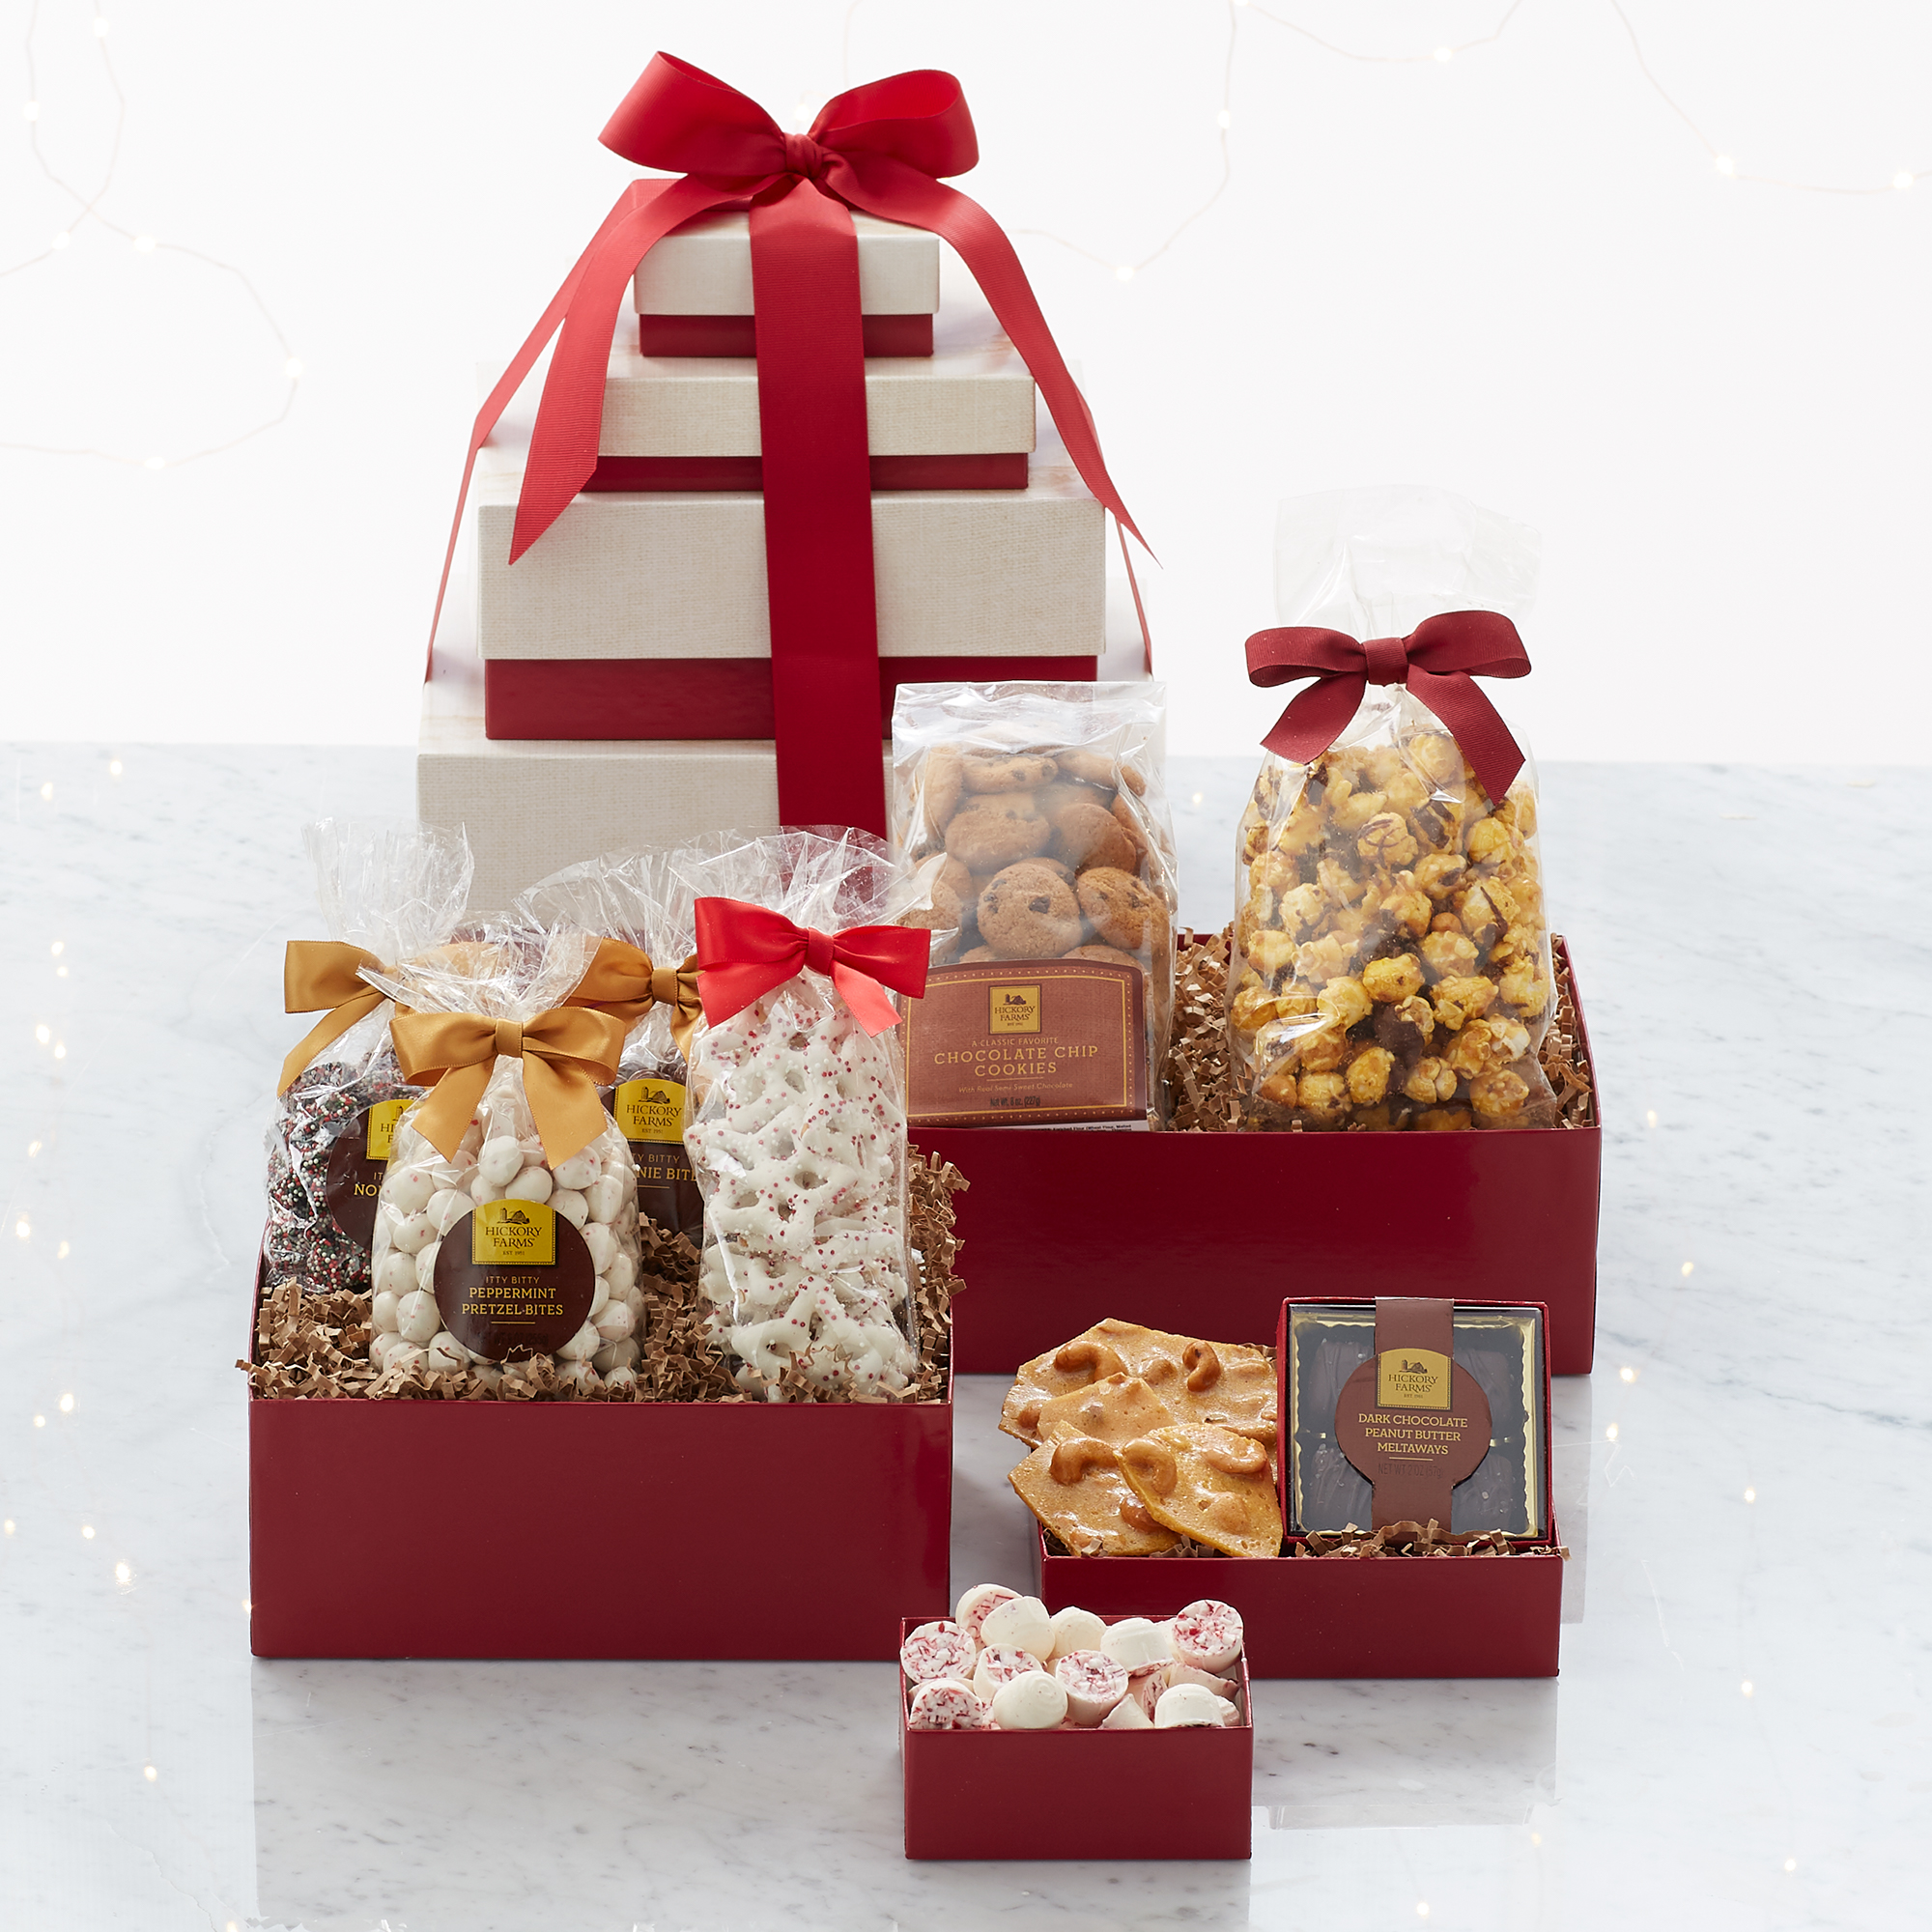 new product gift guide - Hickory Farms Sweet Treats Tower